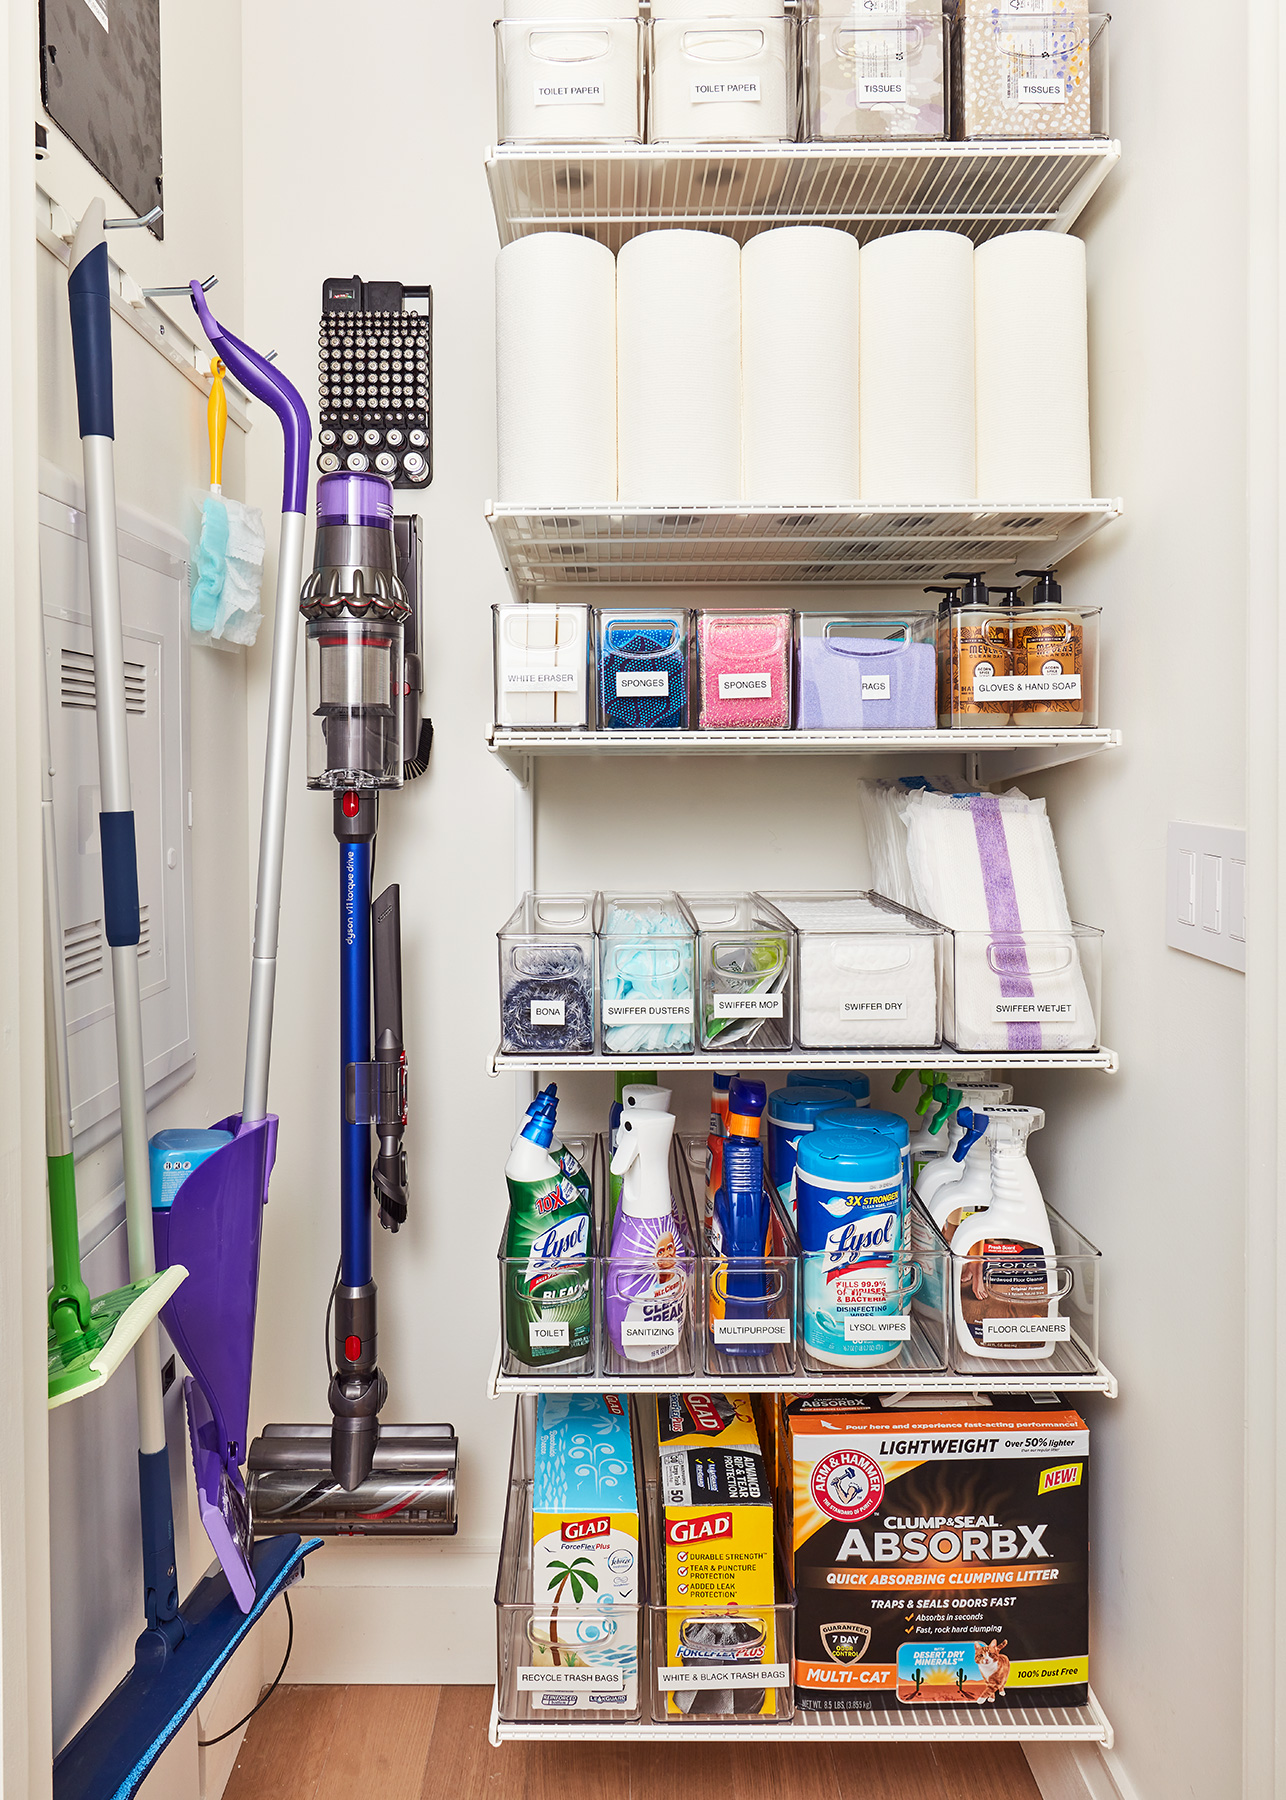 2020 Real Simple Home Tour: Cleaning Closet